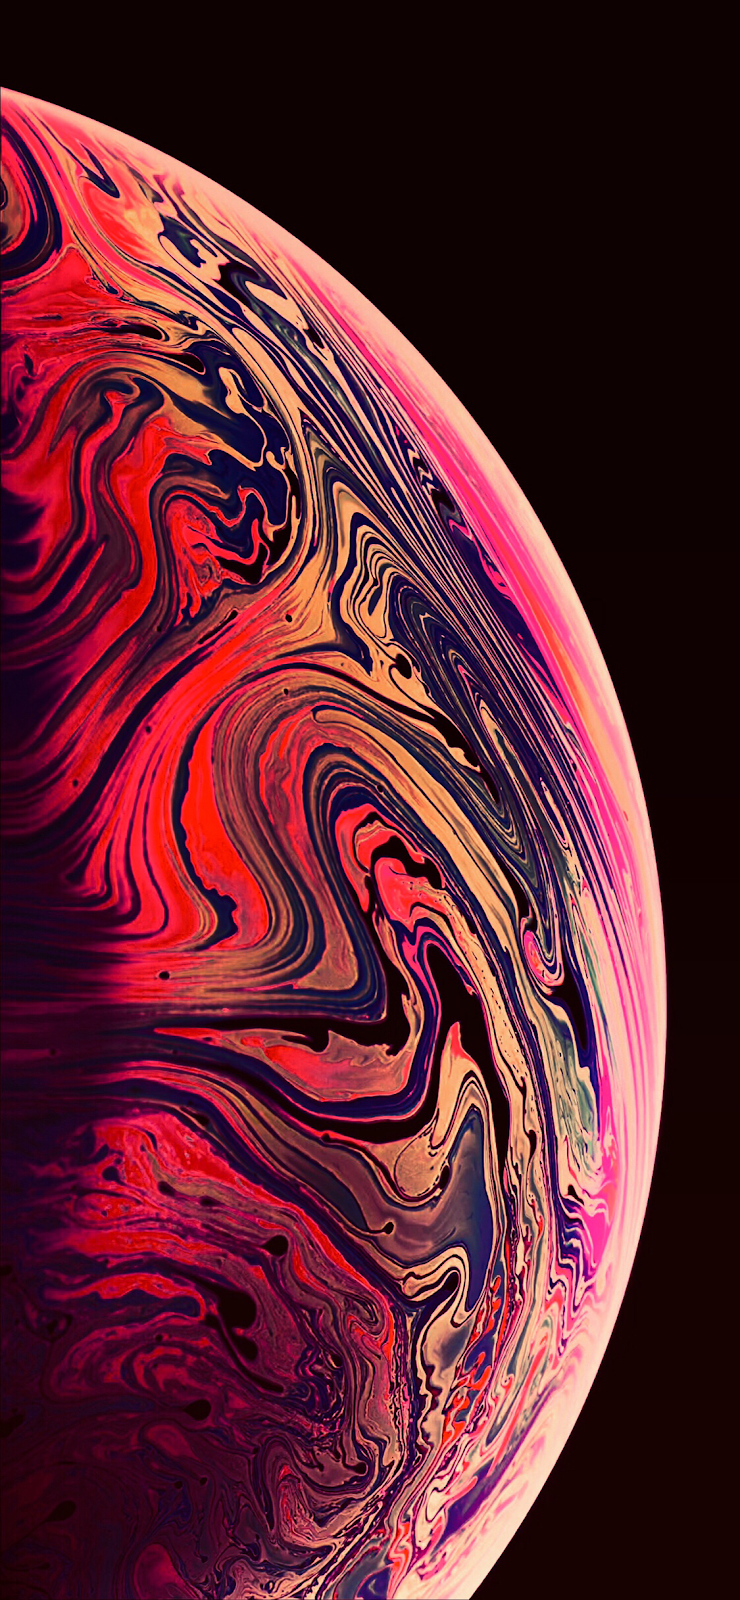 Iphone Xs Max Gradient Modd Wallpapers By Ar72014 2 Variants